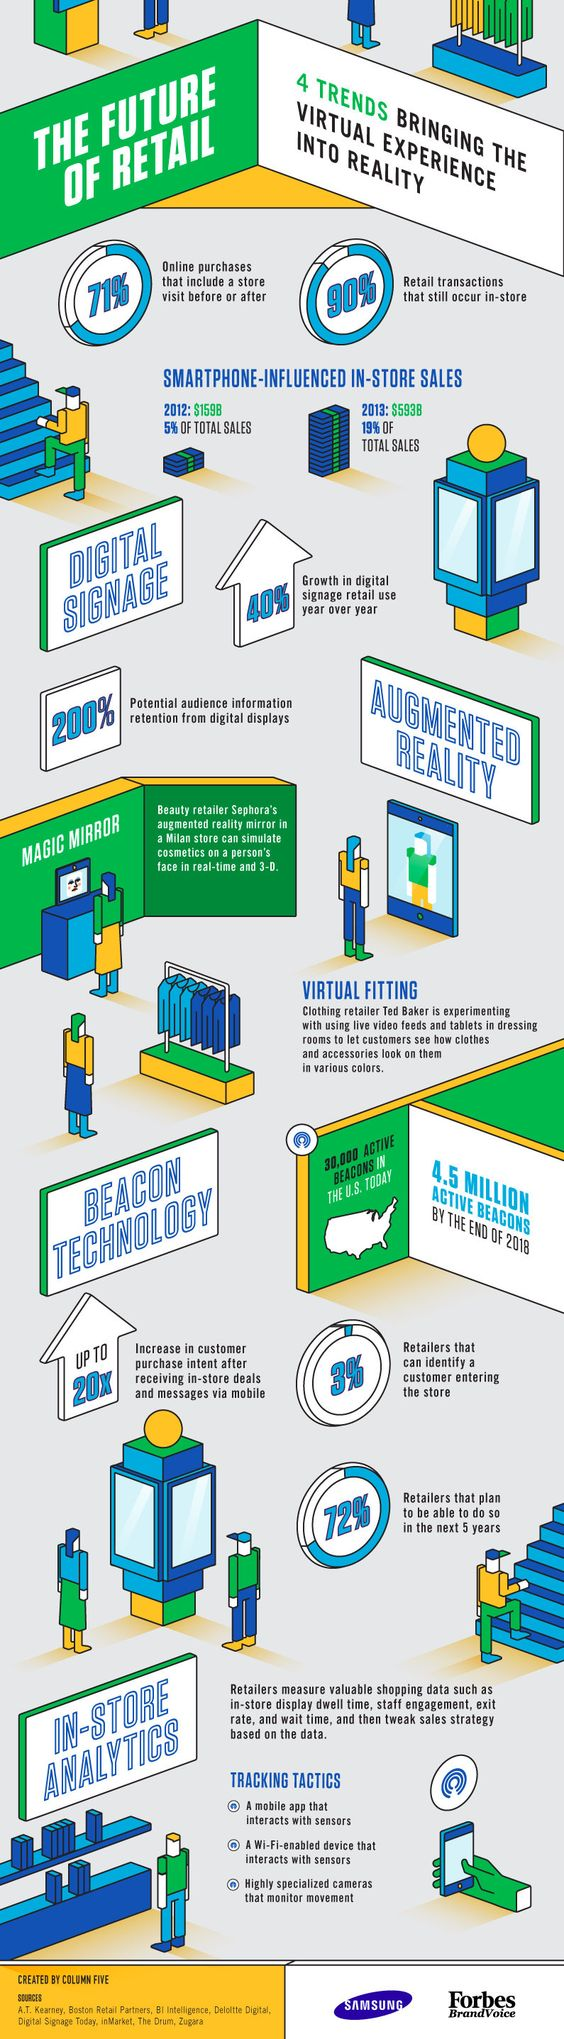 The Future of Retail 4 Trends Bringing the Virtual Experience Into Reality